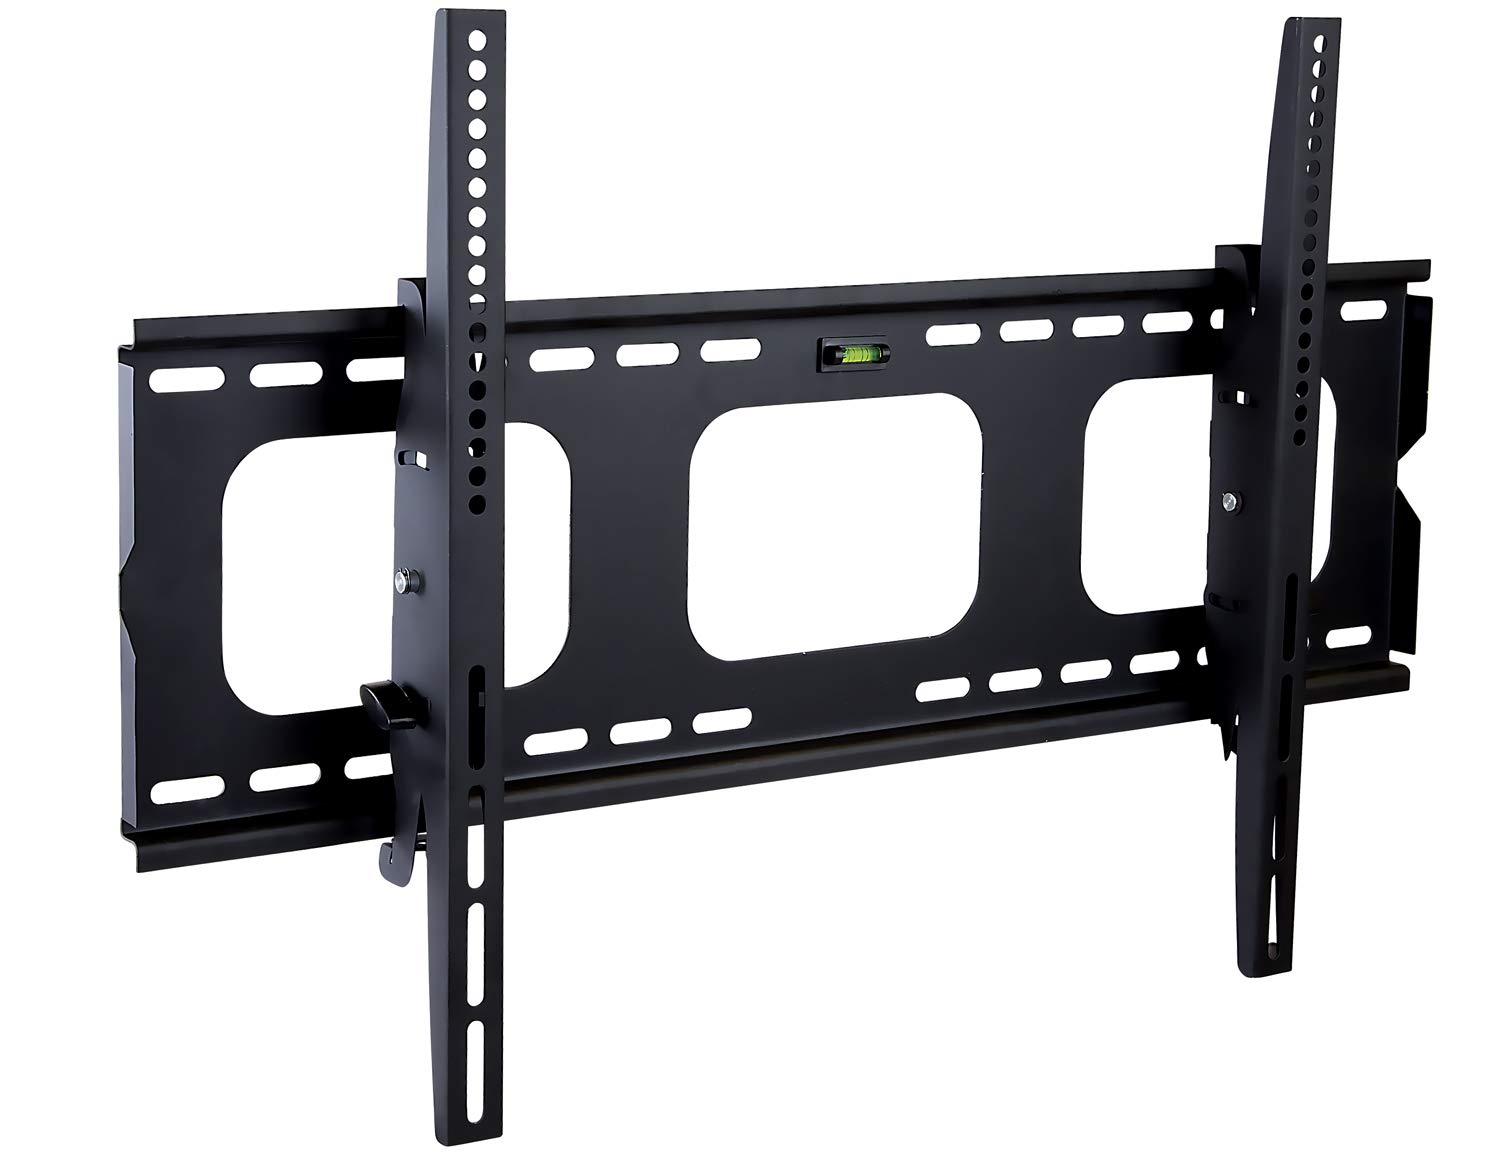 Mount-It! Tilting TV Wall Mount Bracket For Samsung Sony Vizio LG Panasonic TCL Element 32 40 42 47 50 55 60 65 Inch TVs VESA 200x200 400x400 600x400, 750x450 Compatible Premium Tilt 175 Lbs Capacity